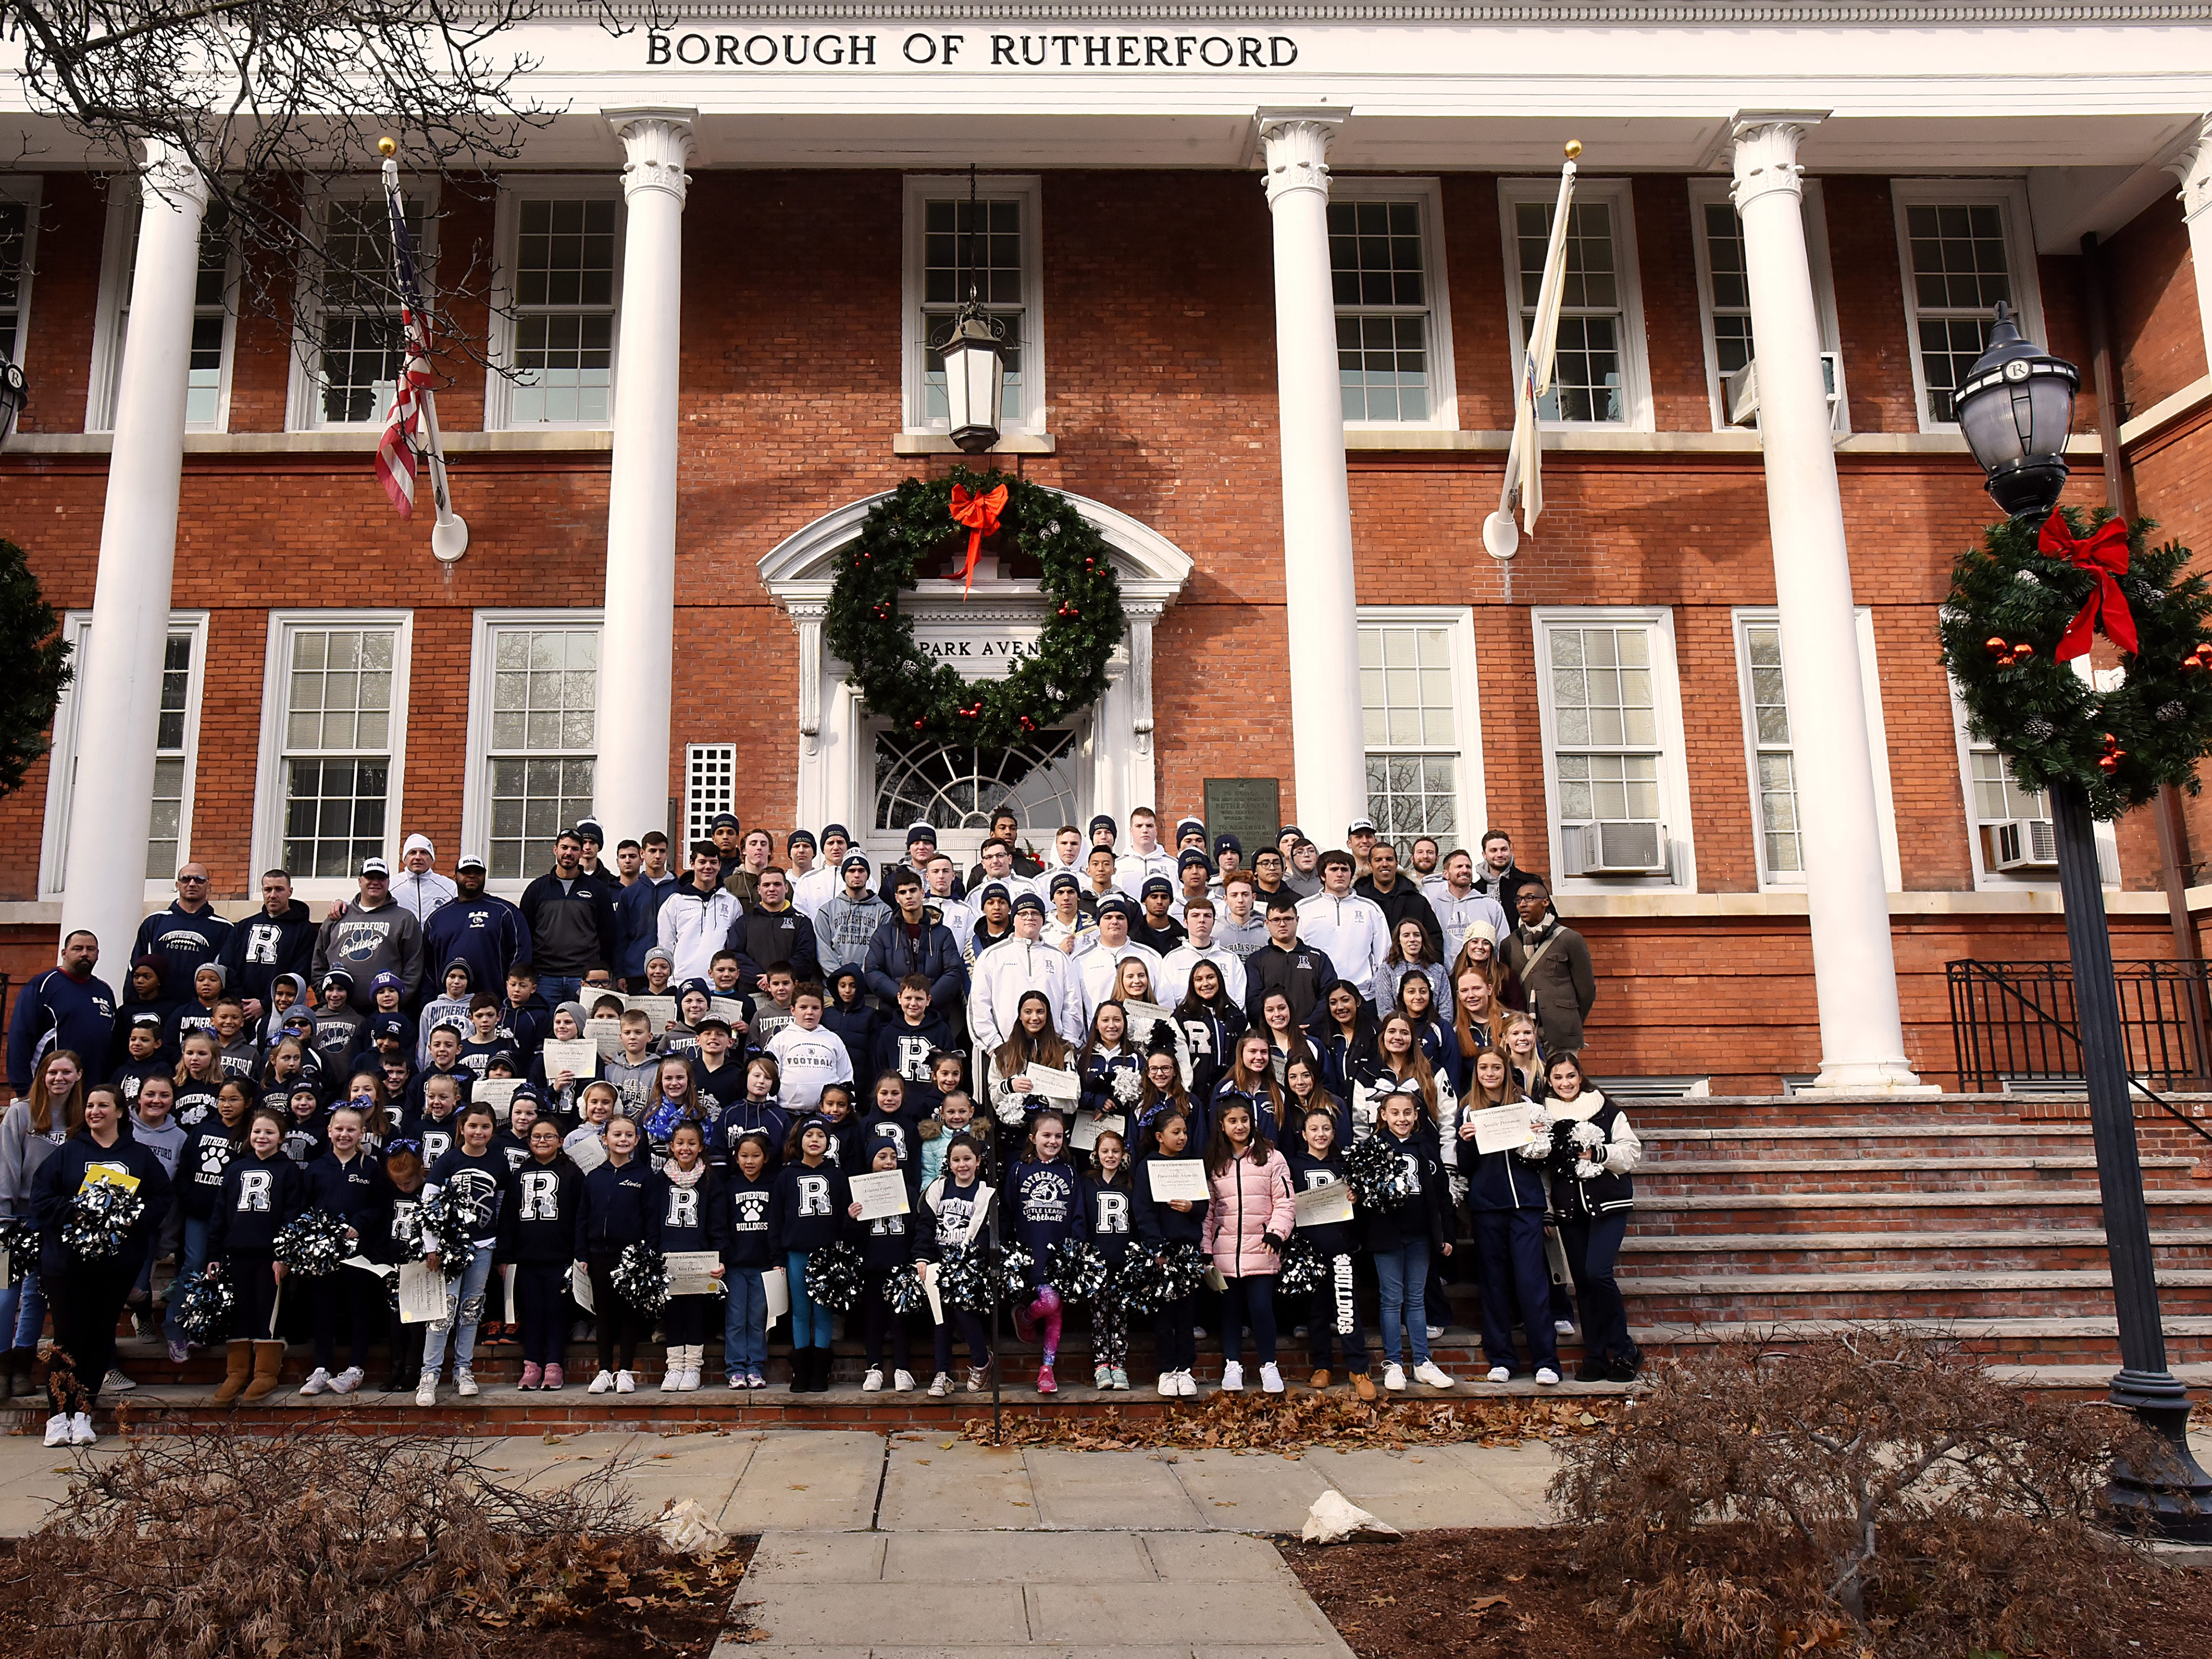 A group photo of the high school and peewee football and cheerleader teams after the Rutherford Football parade in front of the Rutherford Borough Hall on Saturday December 1, 2018.